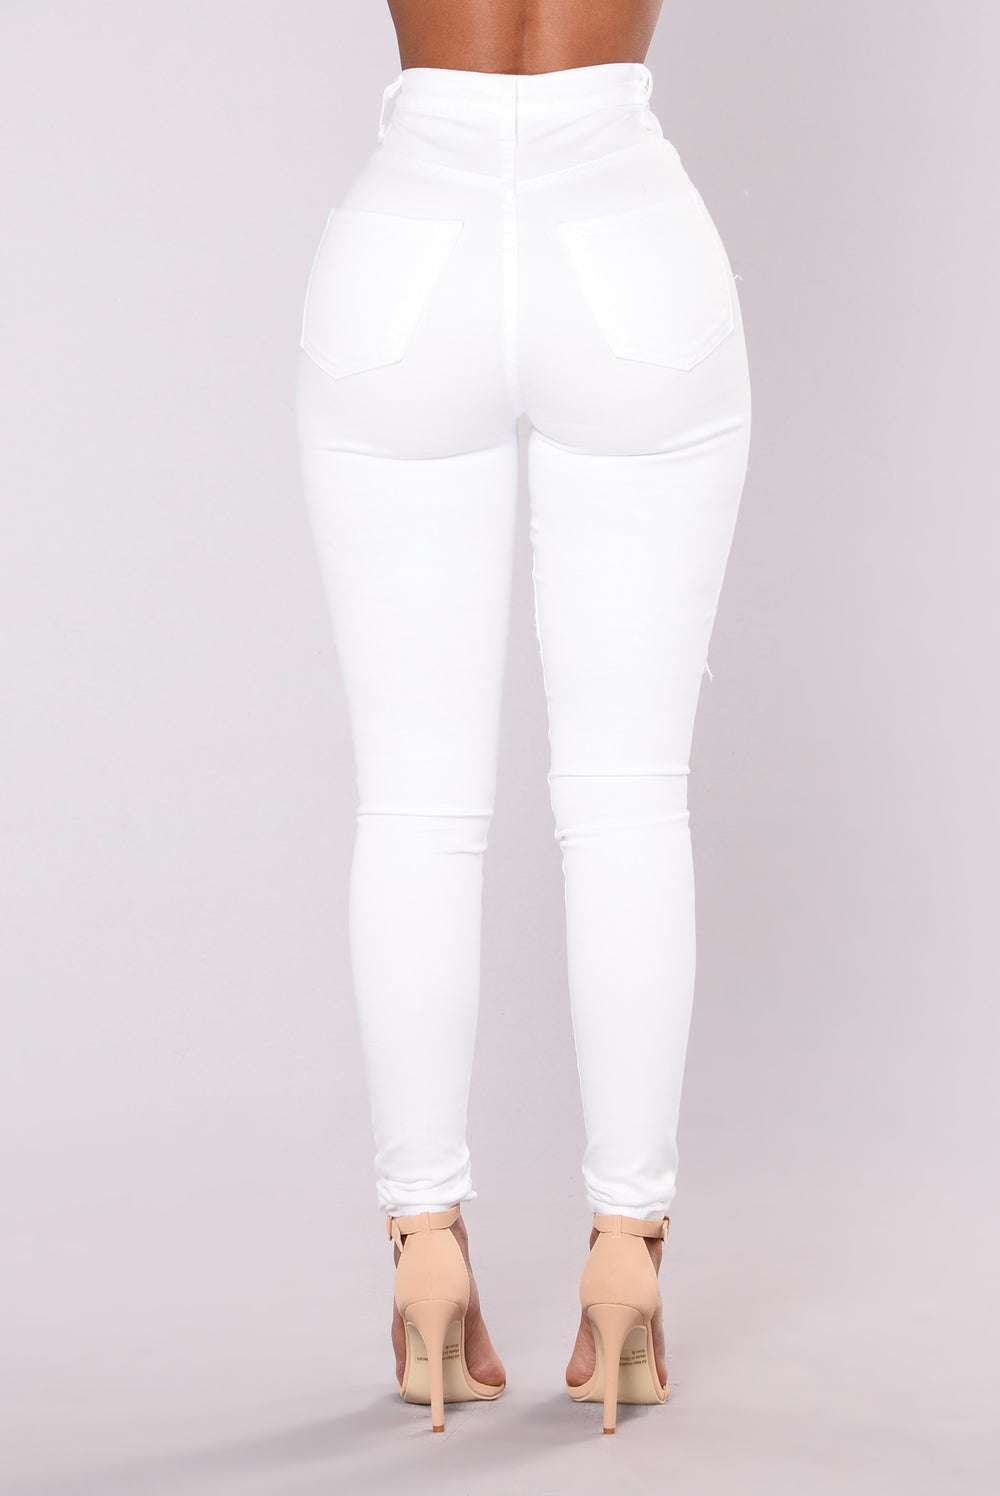 Cambria Distressed Jeans - White